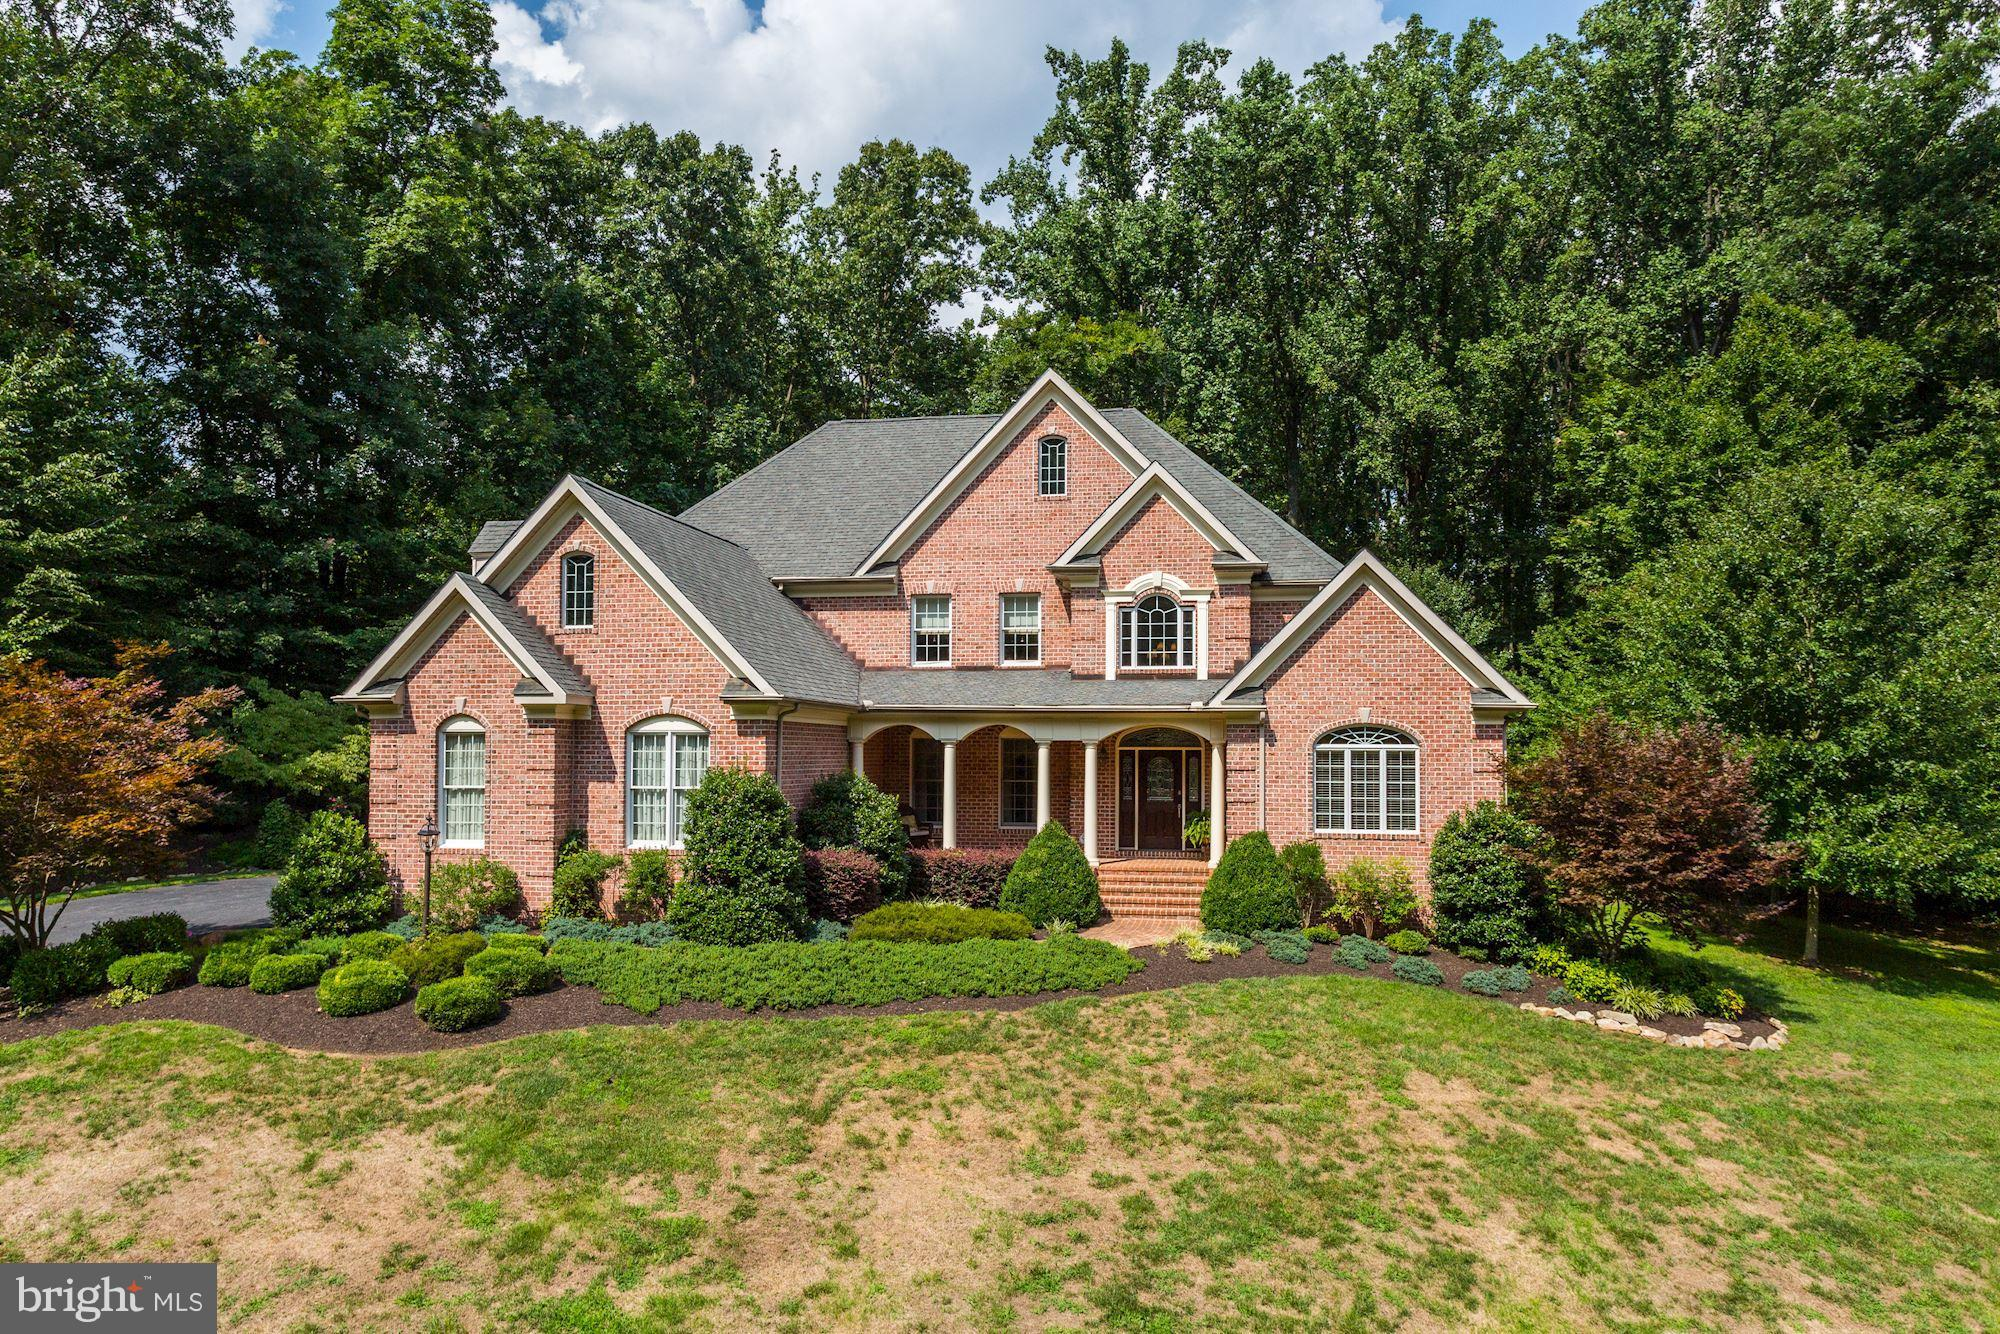 1605 HENRY WAY, FOREST HILL, MD 21050